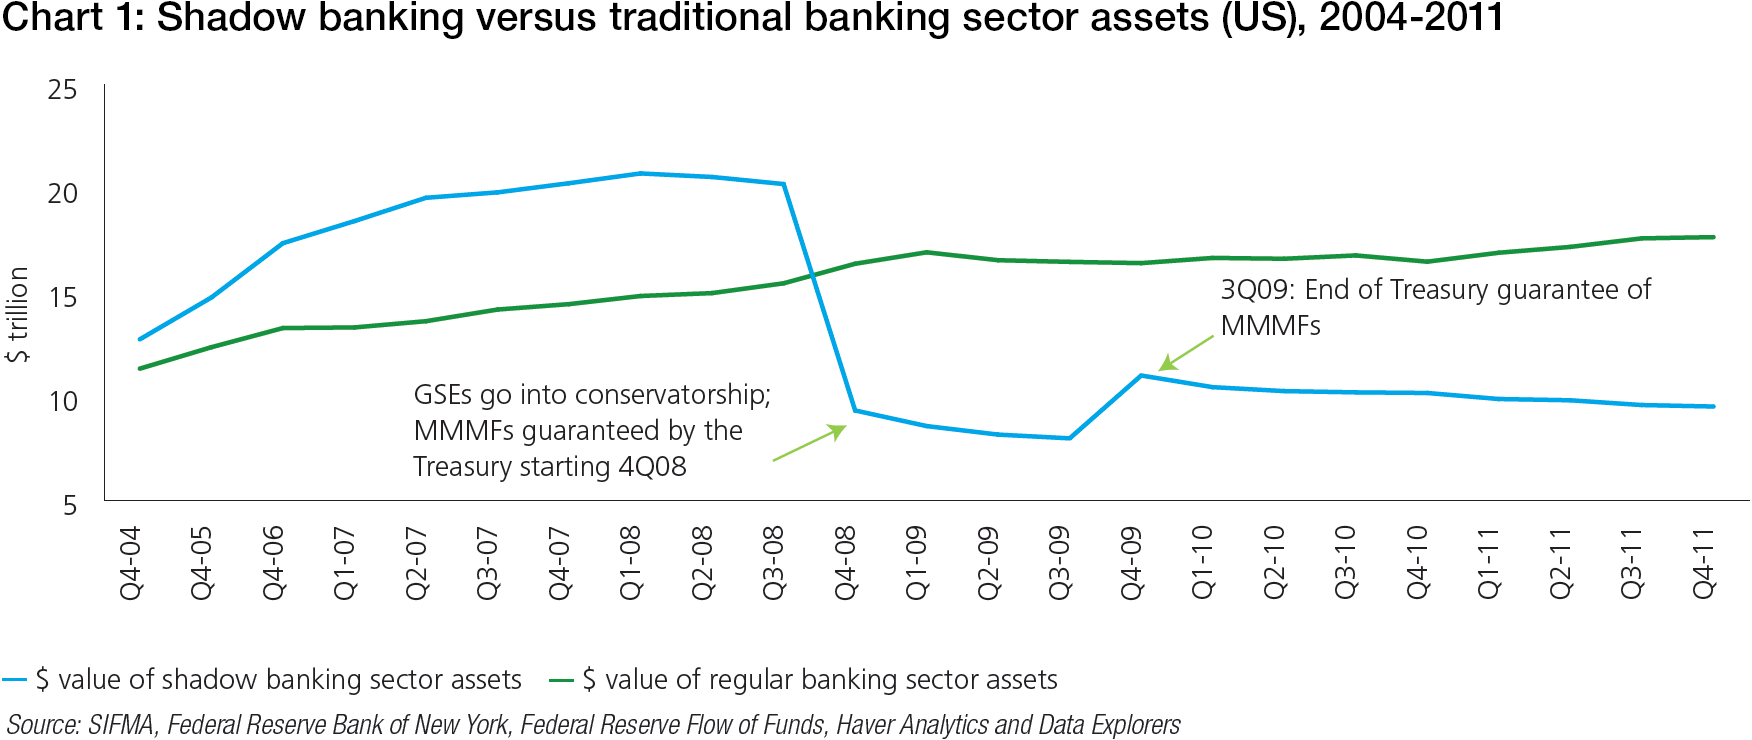 A hazy shade of banking treasury today chart 1 shadow banking versus traditional banking sector assets us 2004 2011 nvjuhfo Gallery